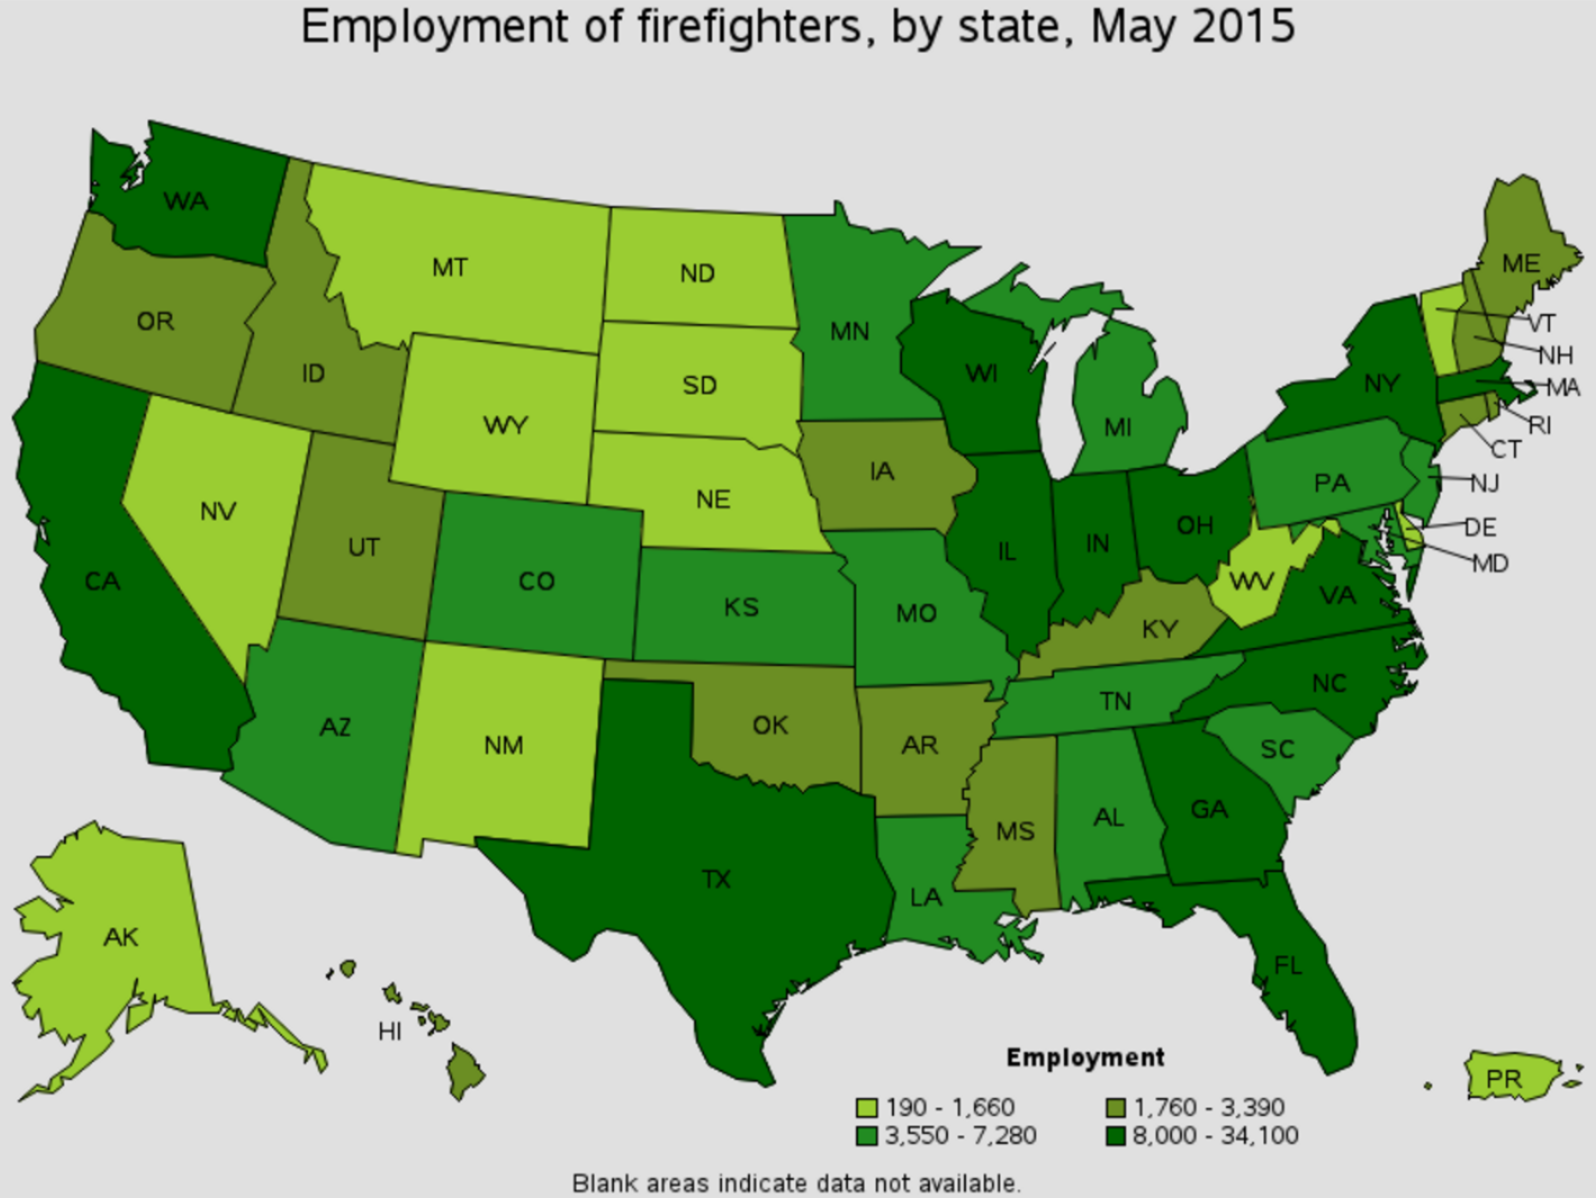 firefighter job outlook by state Unalaska Alaska